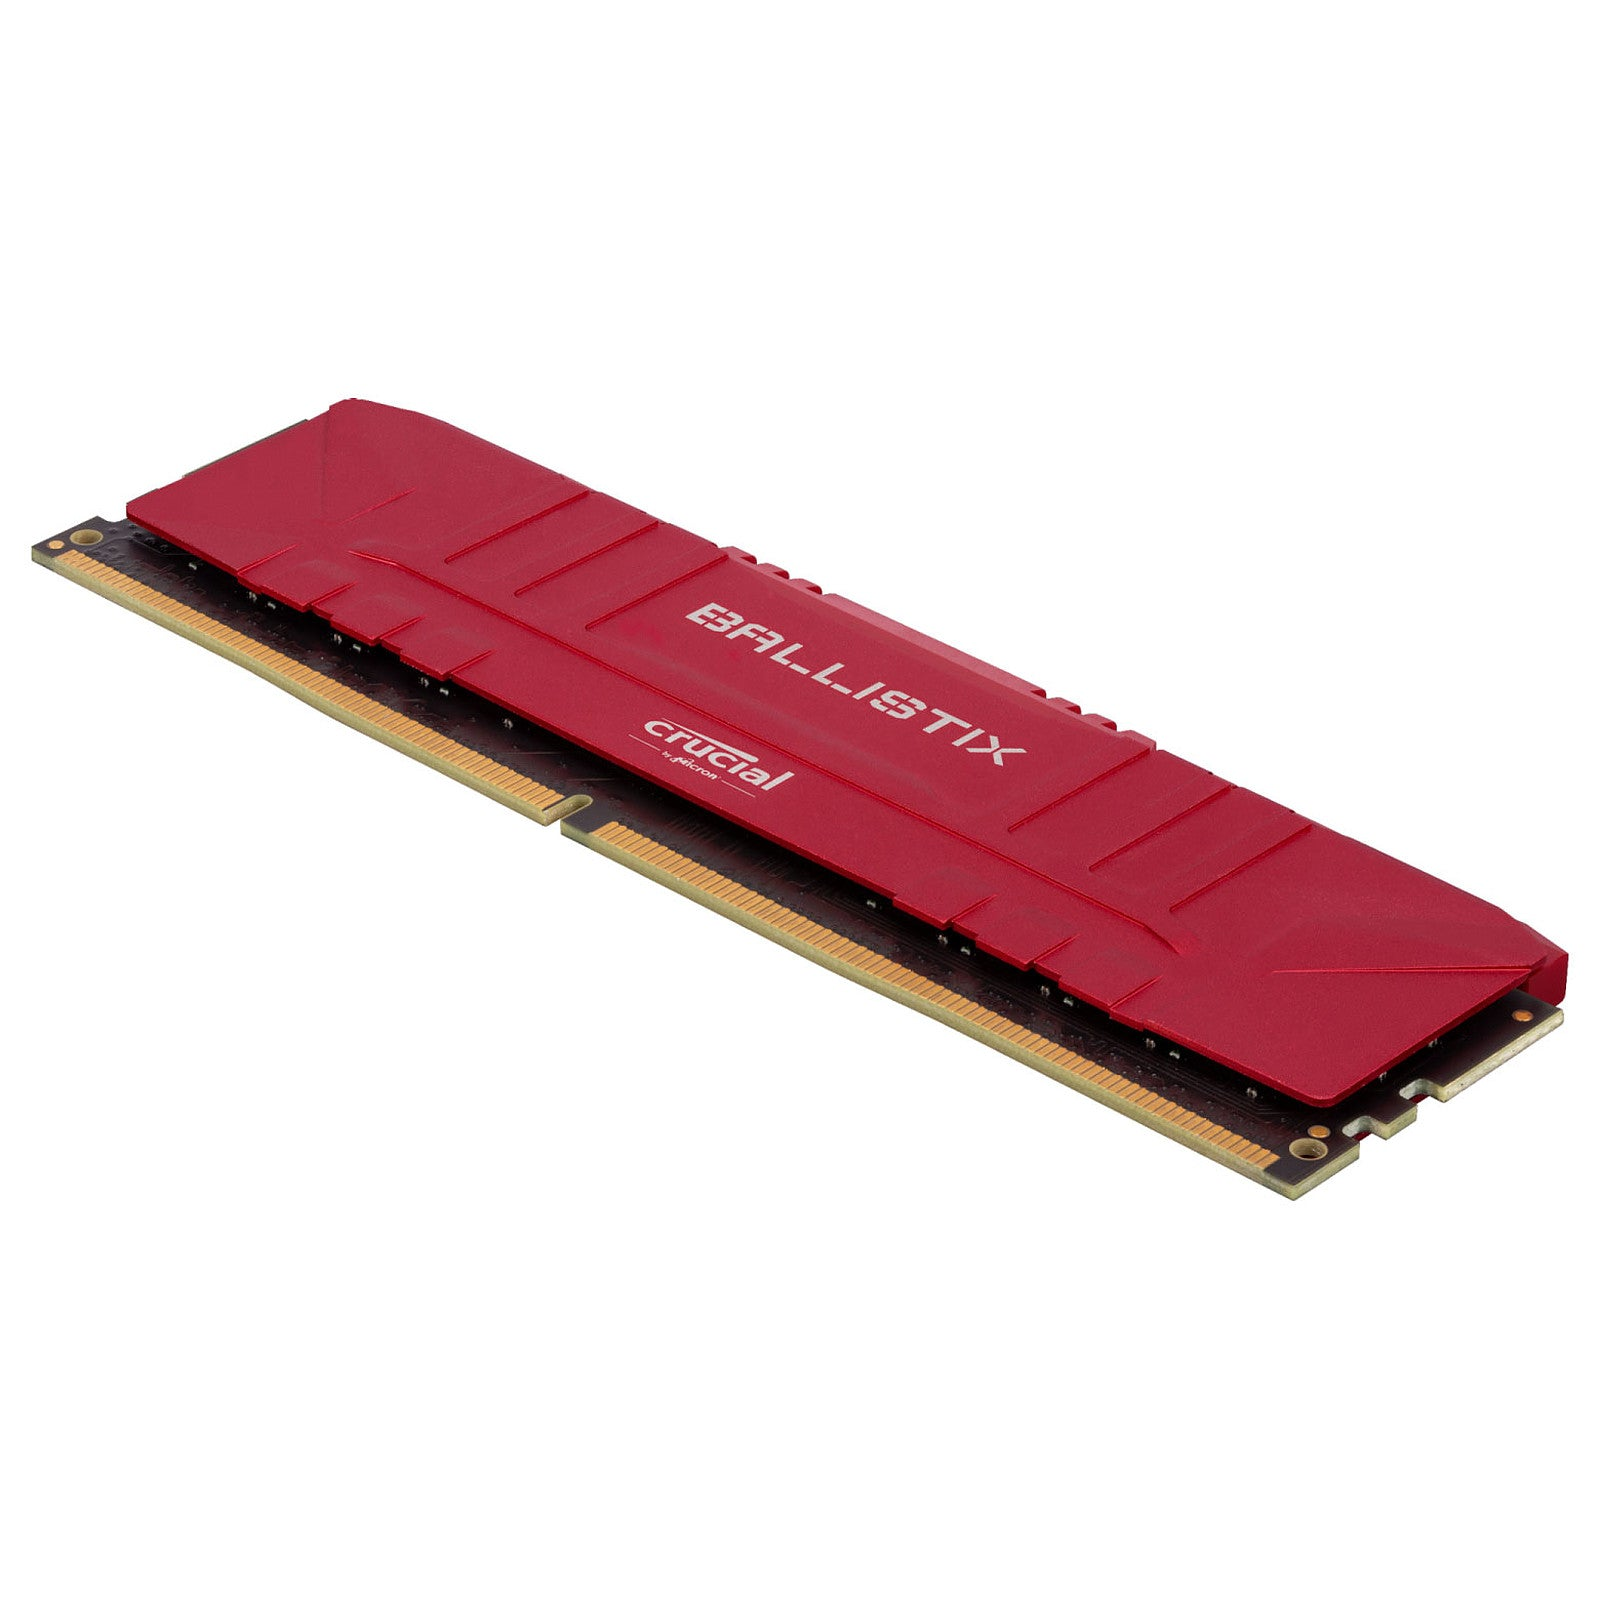 Ballistix Red 16 Go (2 x 8 Go) DDR4 3200 MHz CL16 - Kit Dual Channel RAM DDR4 PC4-25600 - BL2K8G32C16U4R